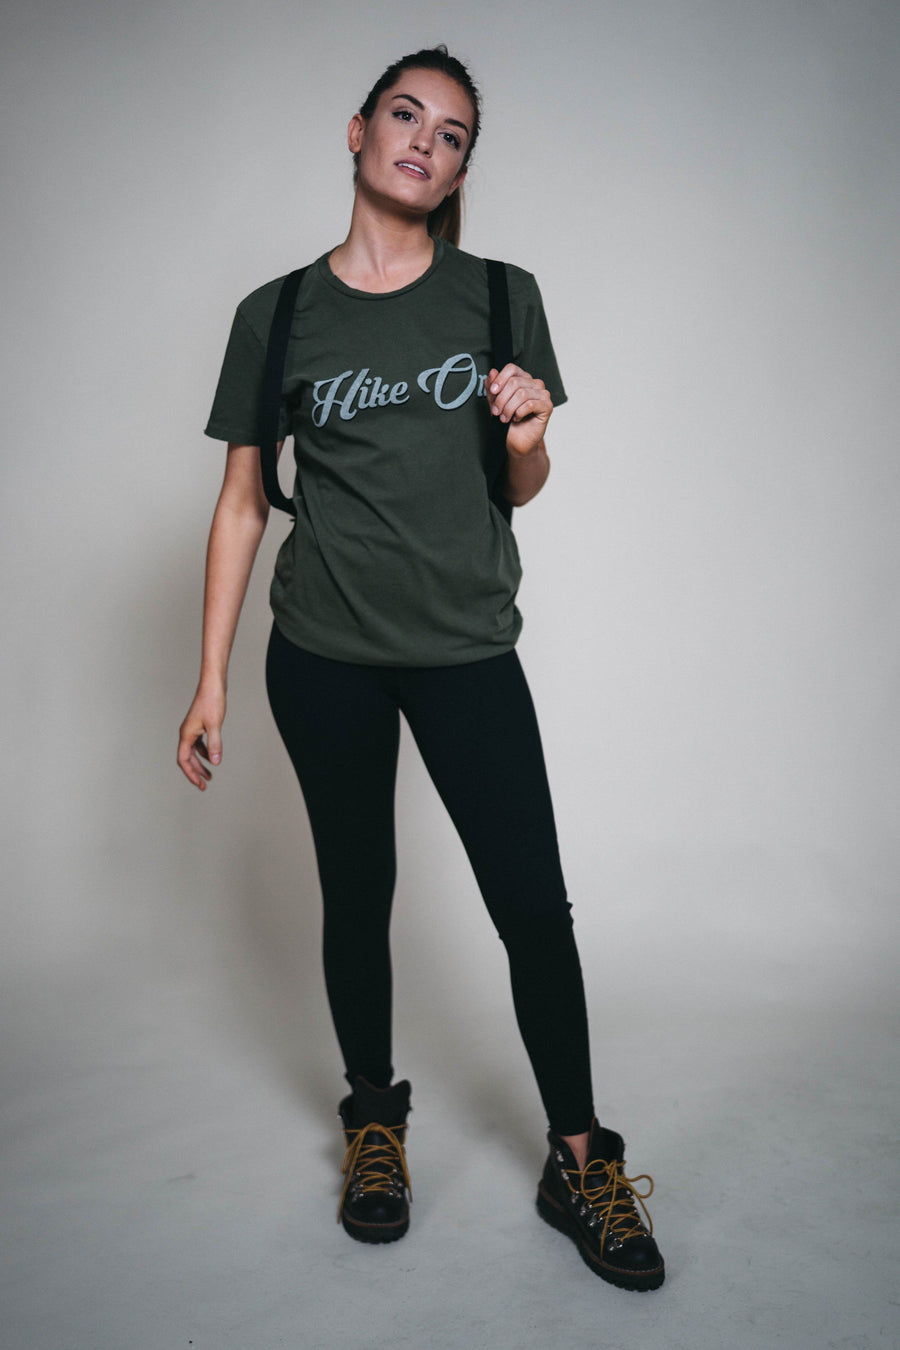 Hike On Distressed Tee - Wondery, A Parks Apparel Brand